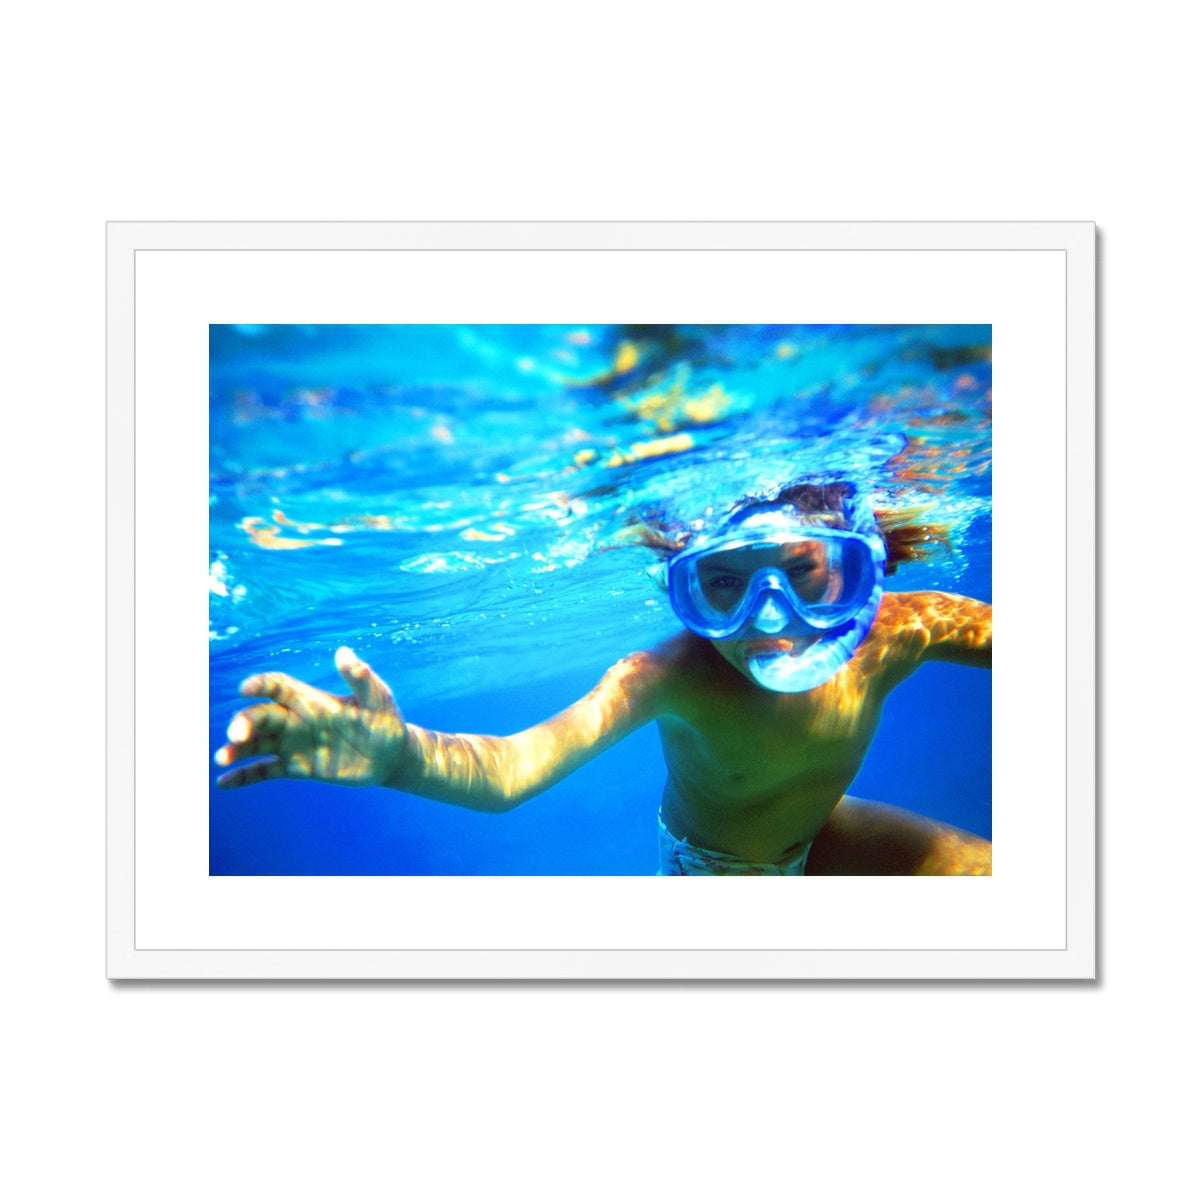 Bedouin Aqua Girl - The Red Sea - Egypt Framed & Mounted Print